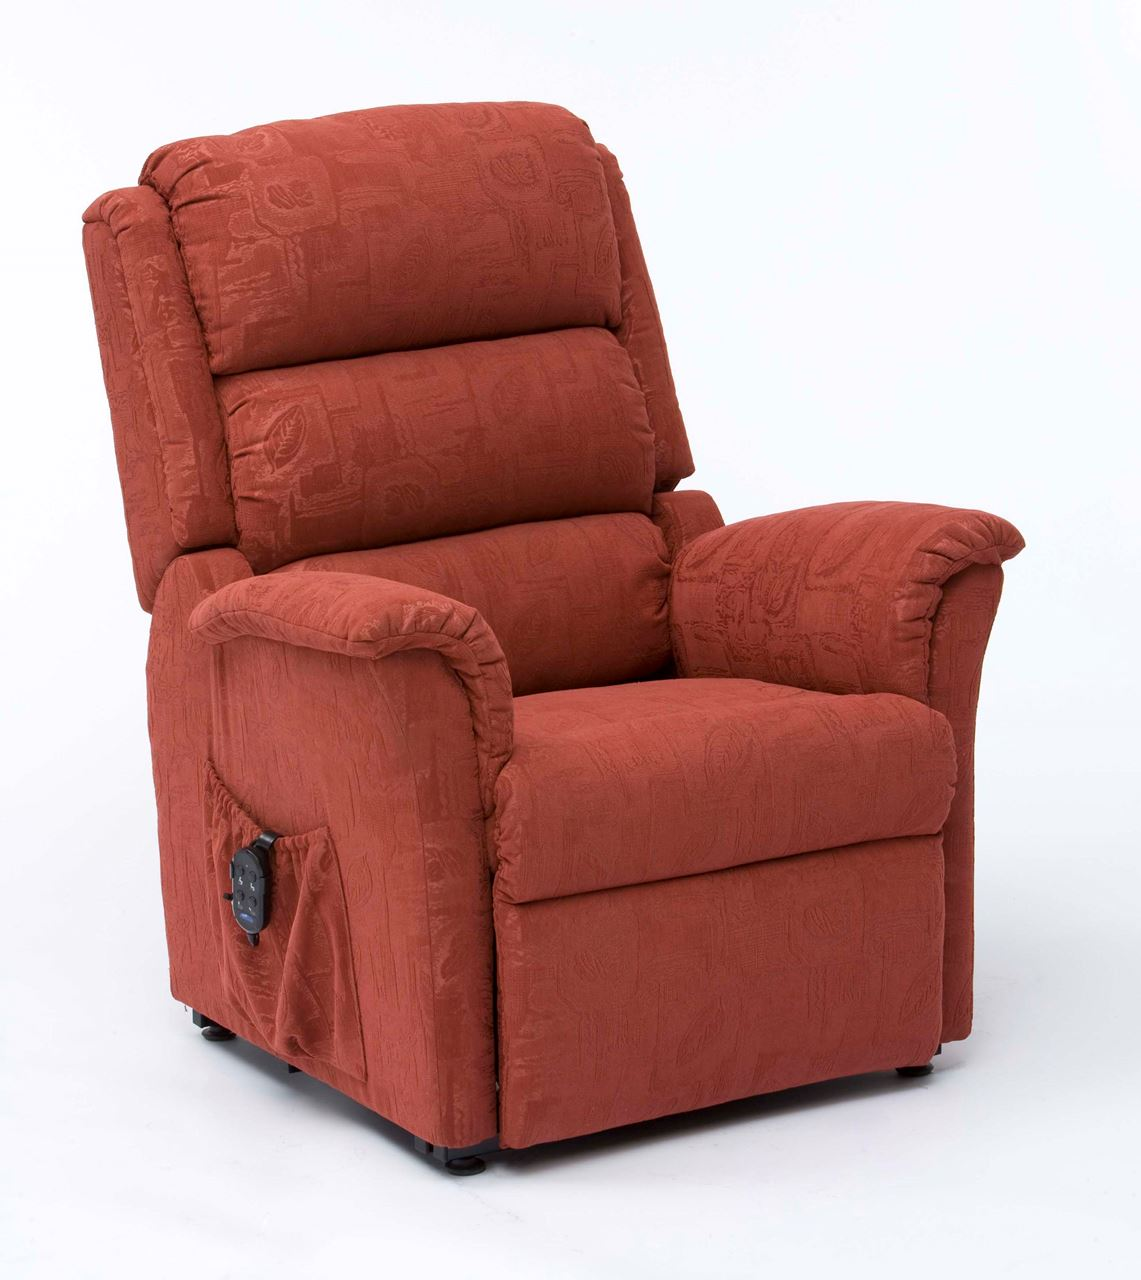 Picture for category Nevada Riser Recliner